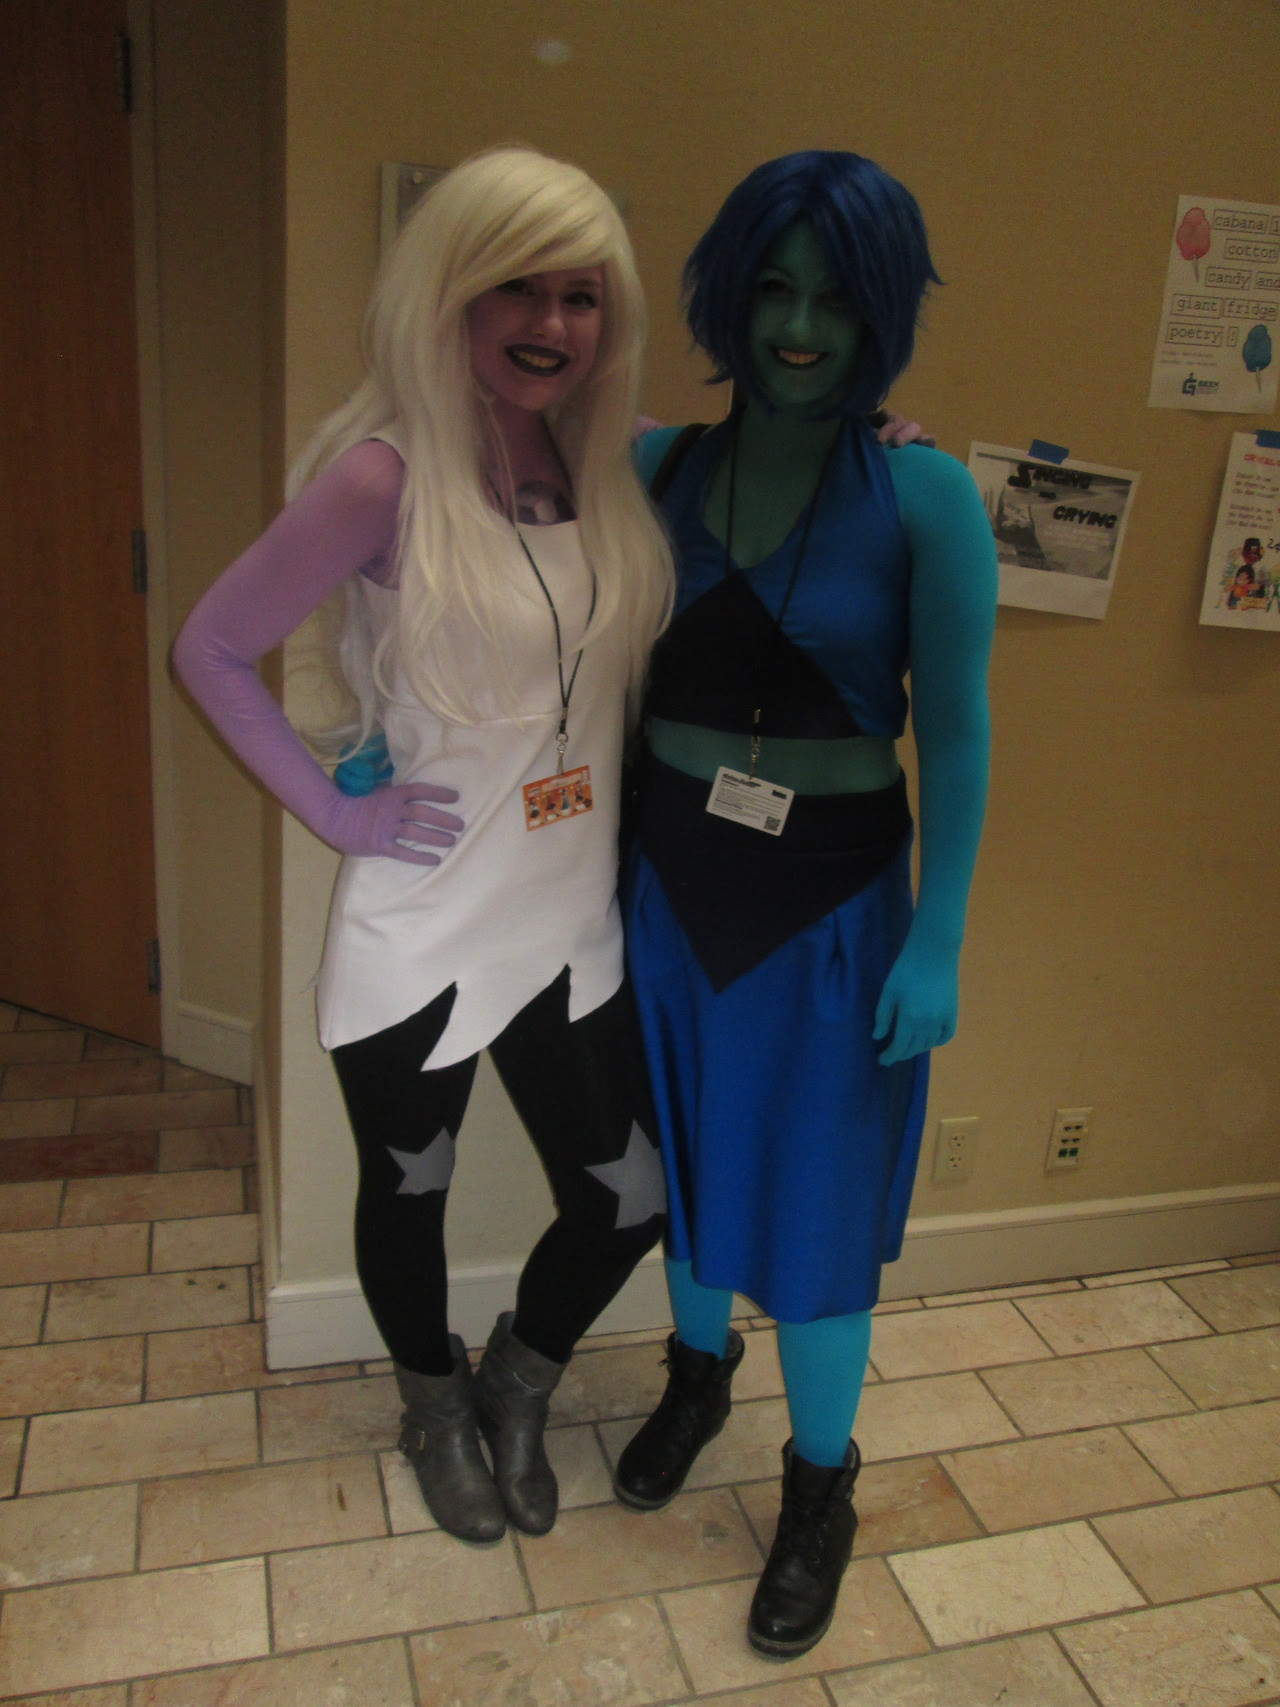 The SU cosplayers were great this year!! That big buff cheeto puff tho, man. And that Centi was so cute!!! (help me credit these cosplayers!!) Rose Quarts: papoosh Centi: @redrover-redrover